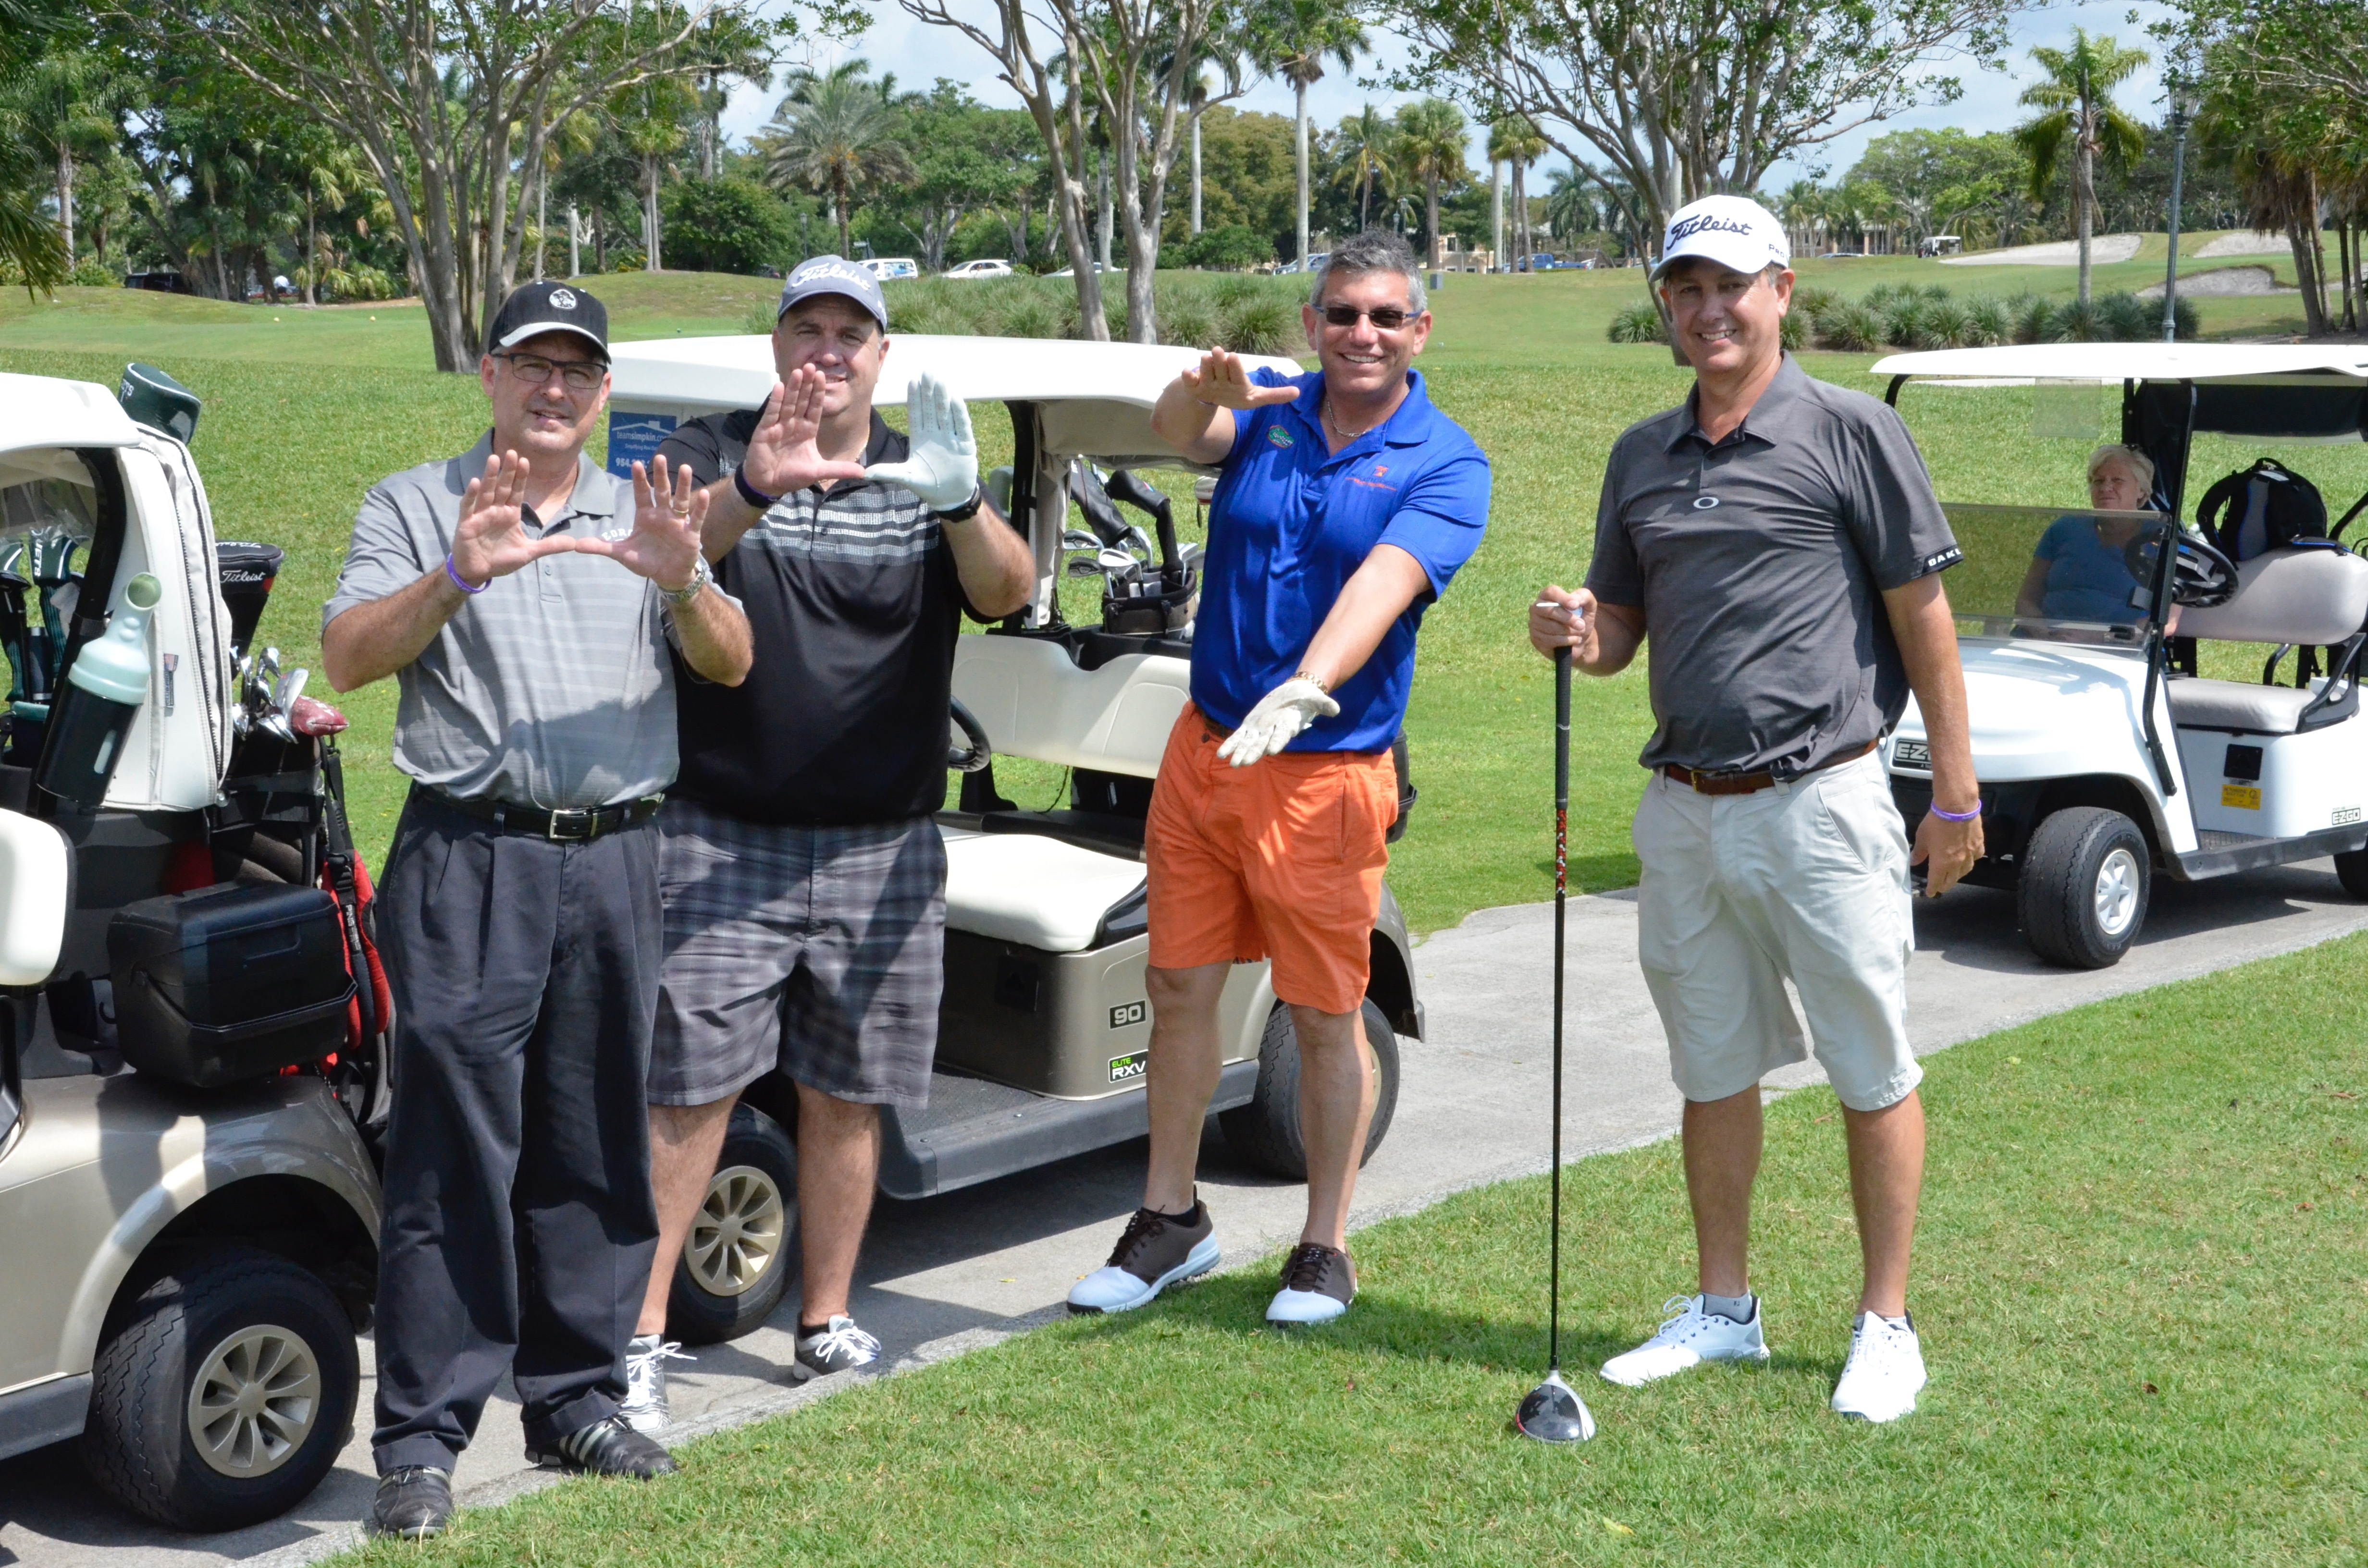 33rd Annual Rotary Golf Classic Sponsored by FHVLEGAL.COM gallery image #15